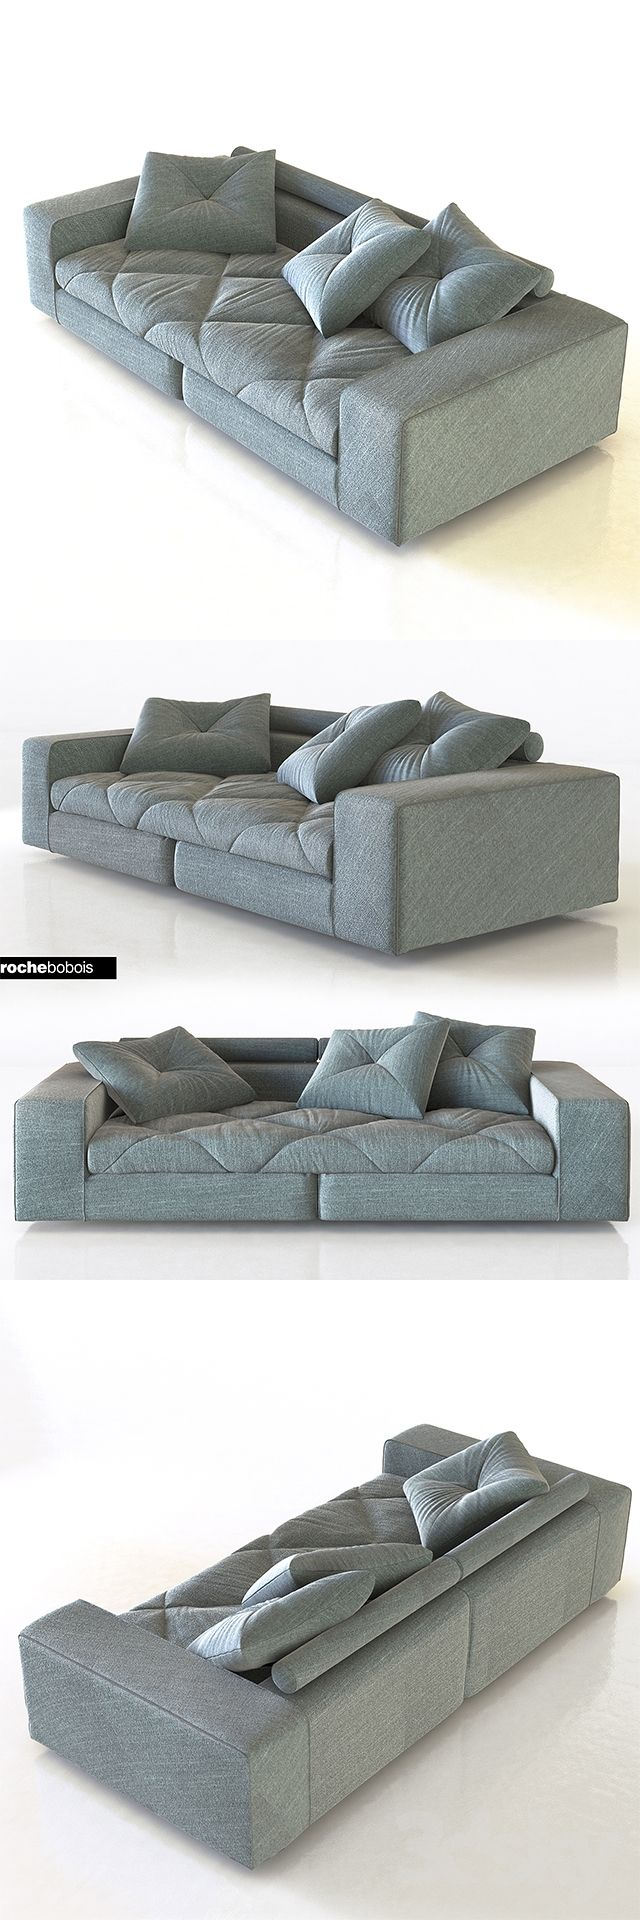 3d Models Sofa Roche Bobois Discours Sofa Bed With Chaise Comfy Sofa Bed Sofa Bed